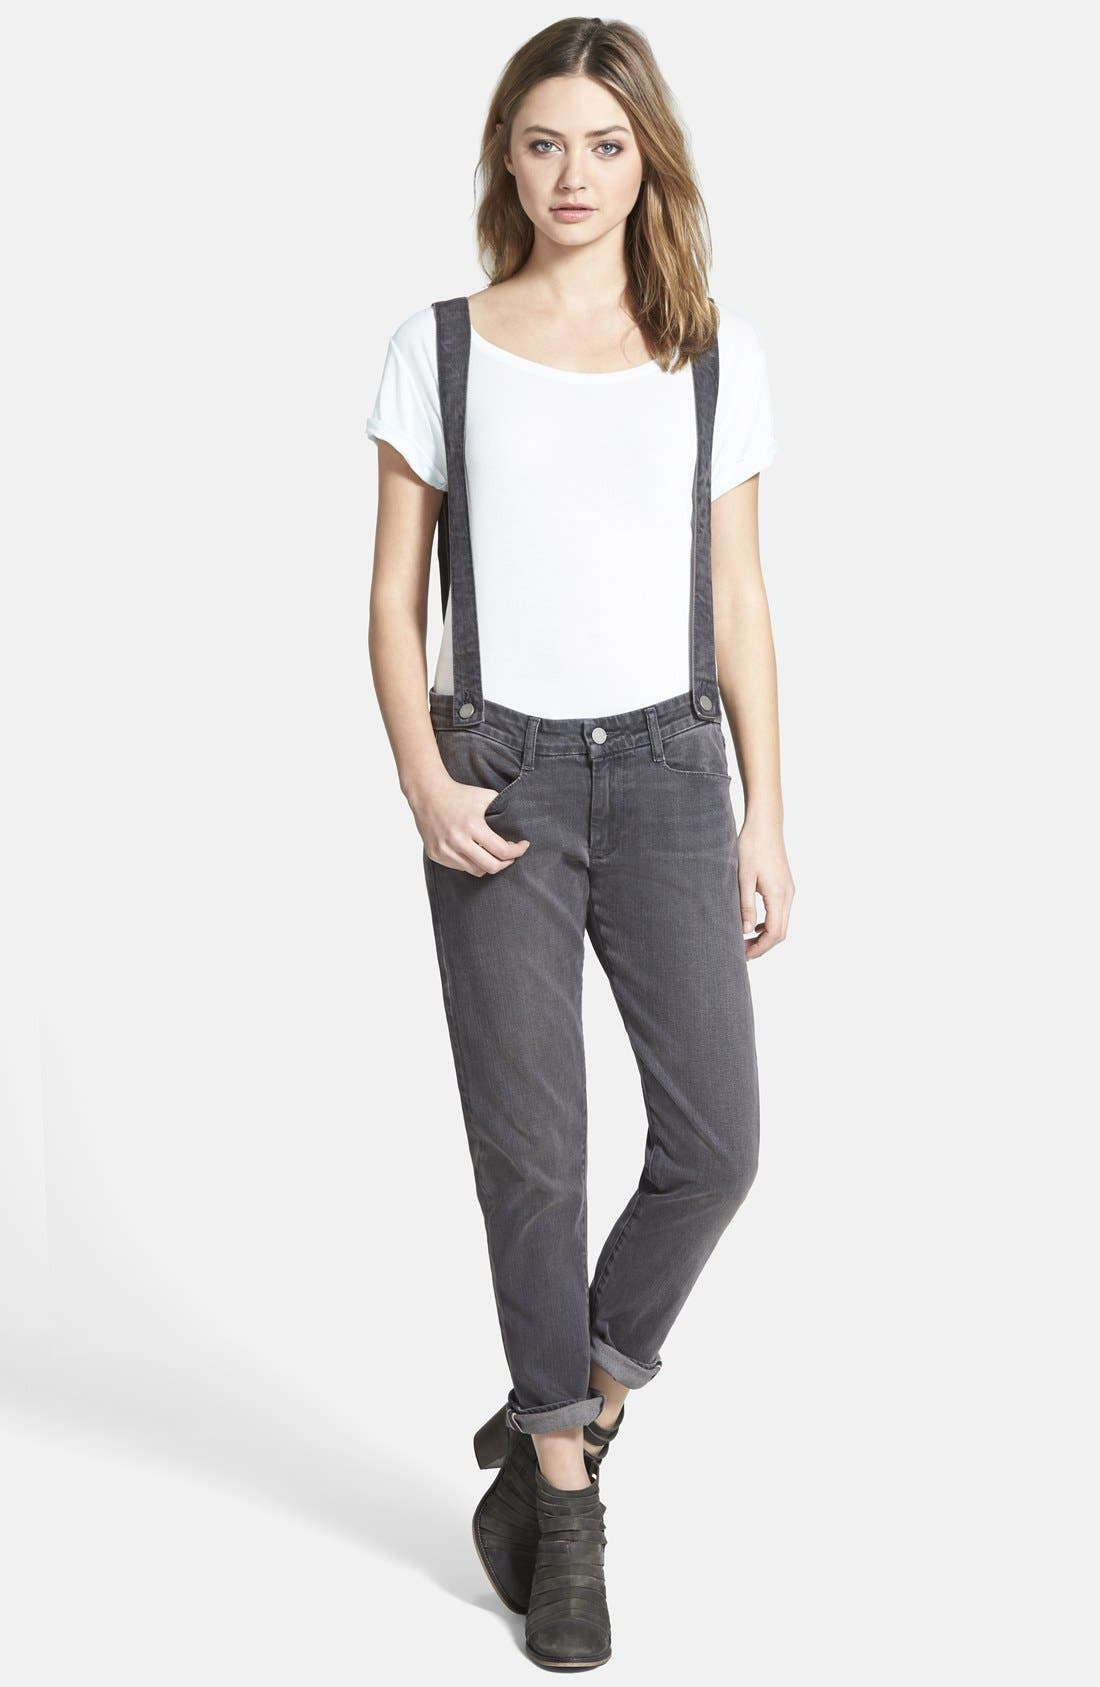 Alternate Image 1 Selected - Paige Denim 'Phillipa' Boyfriend Jeans with Suspenders (Rudy)